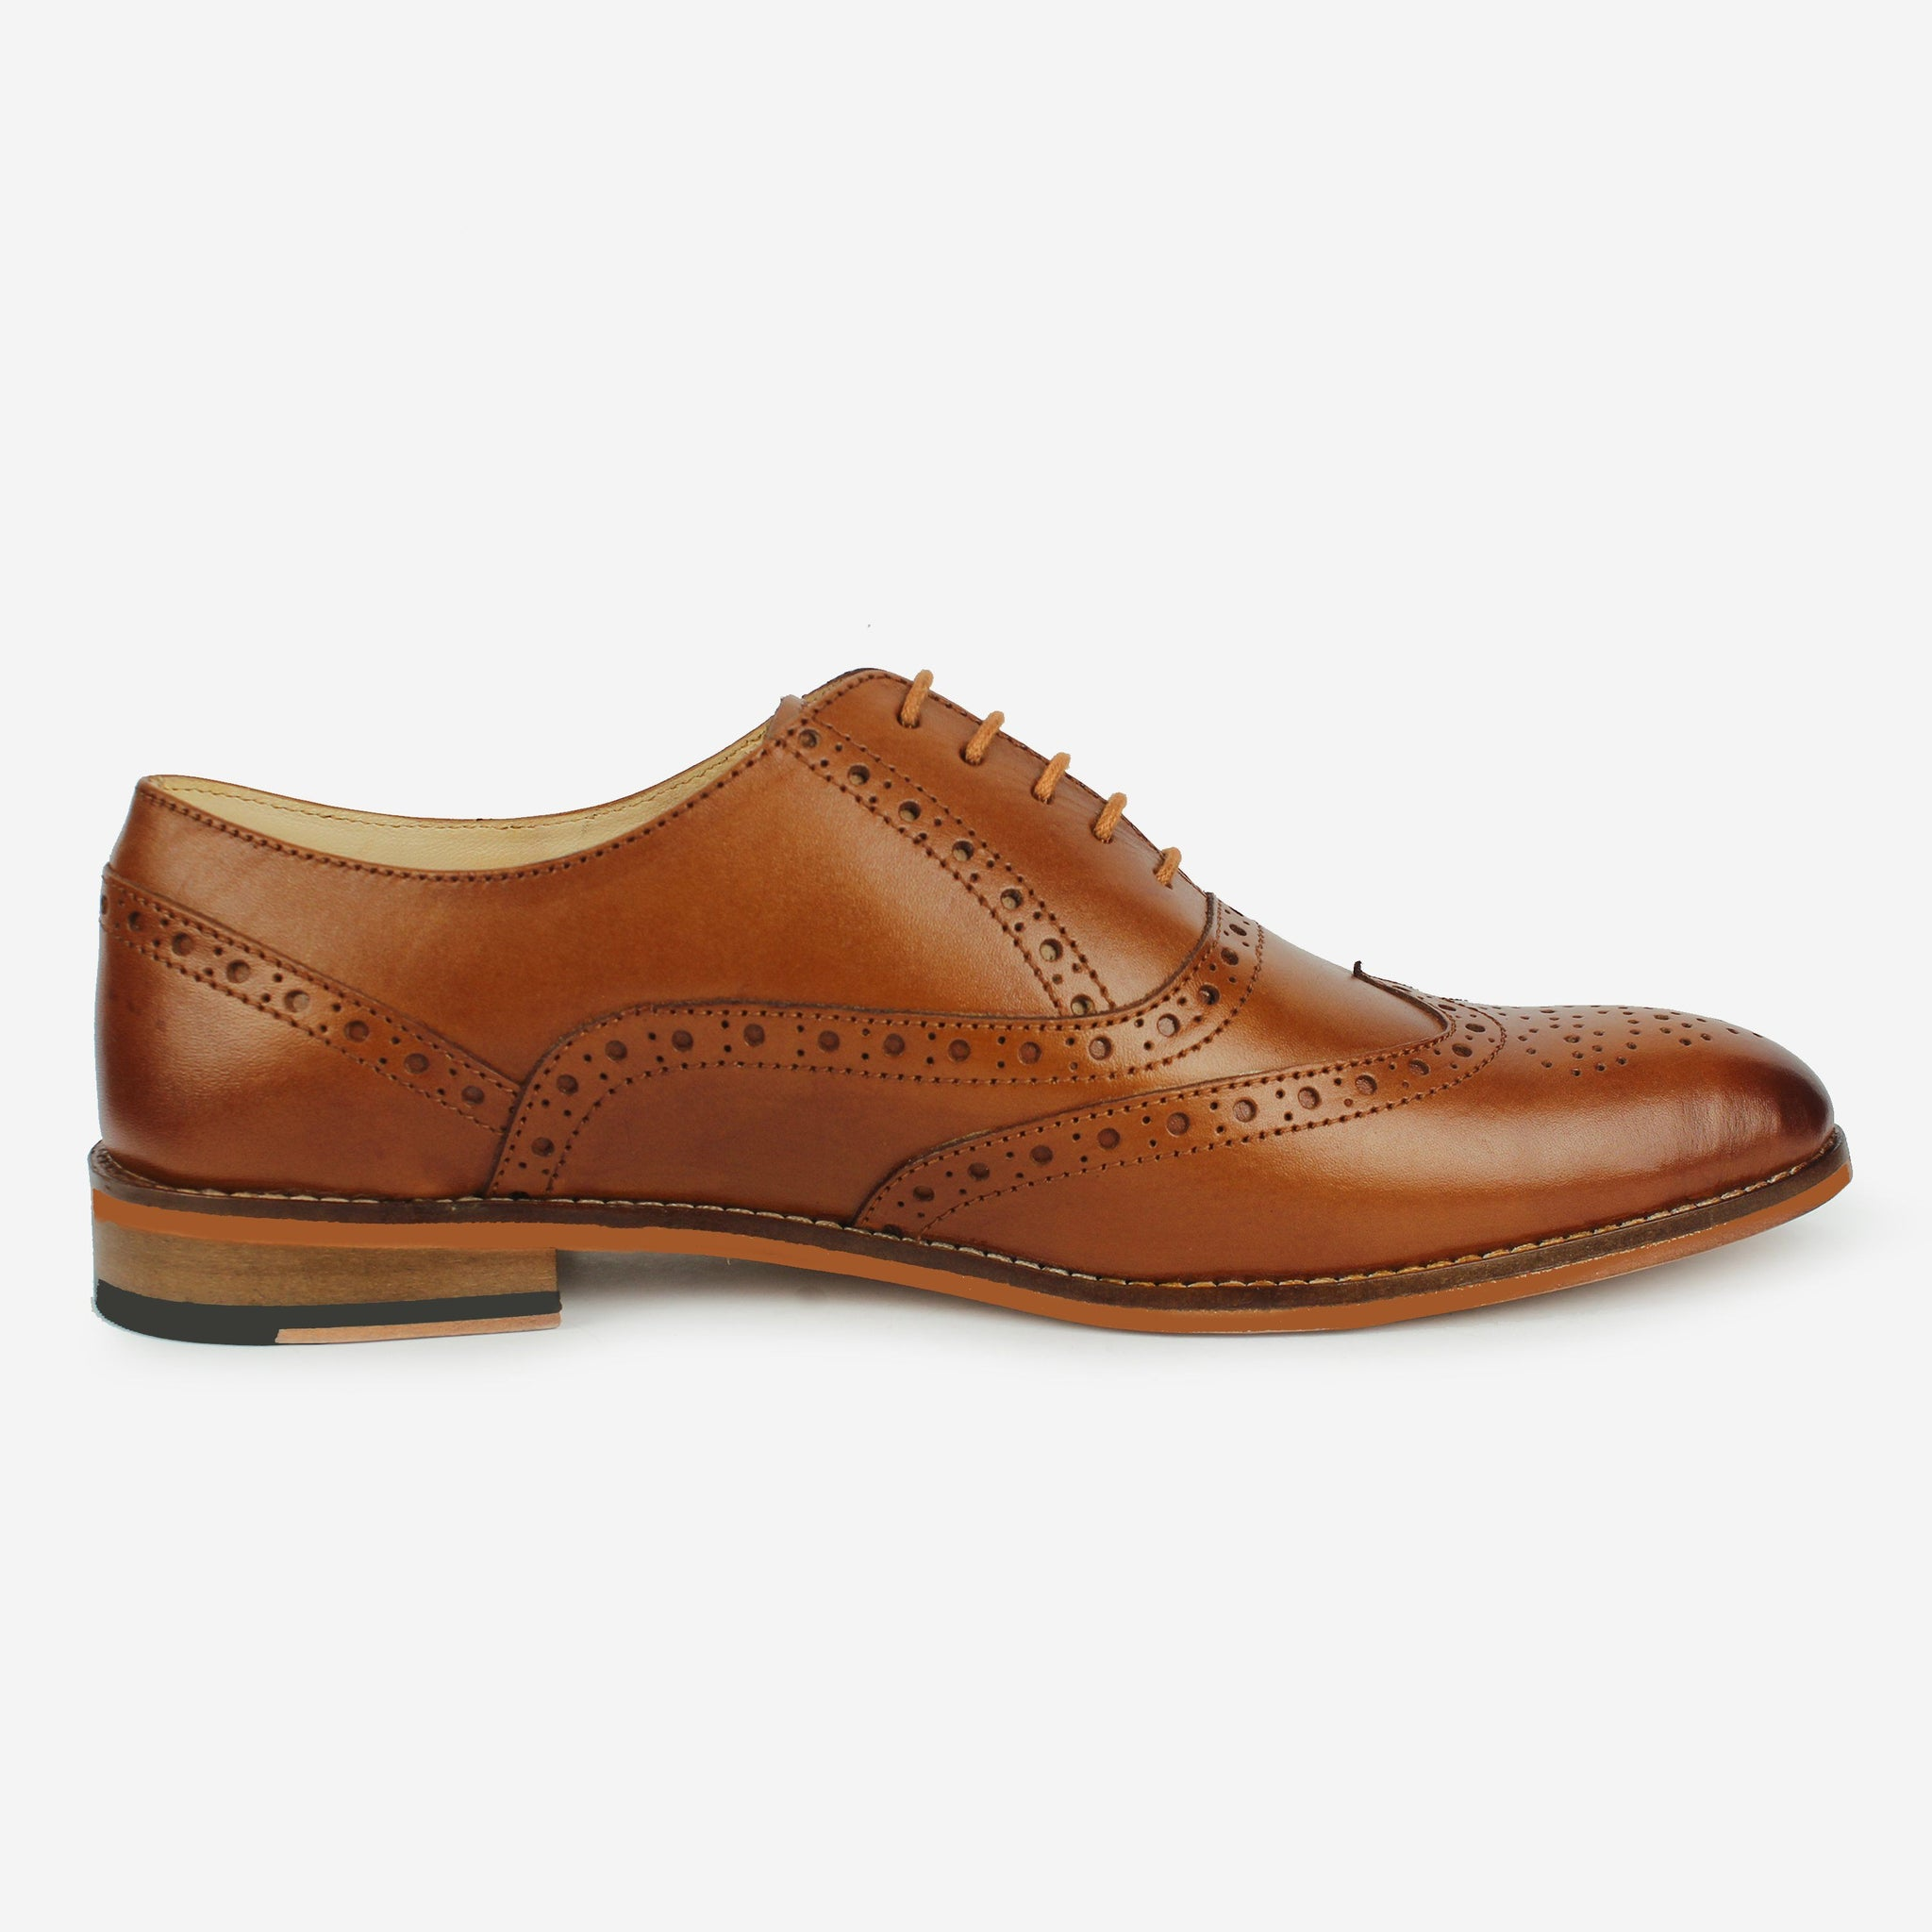 Castor Wingtip Oxford Tan Thebootsco